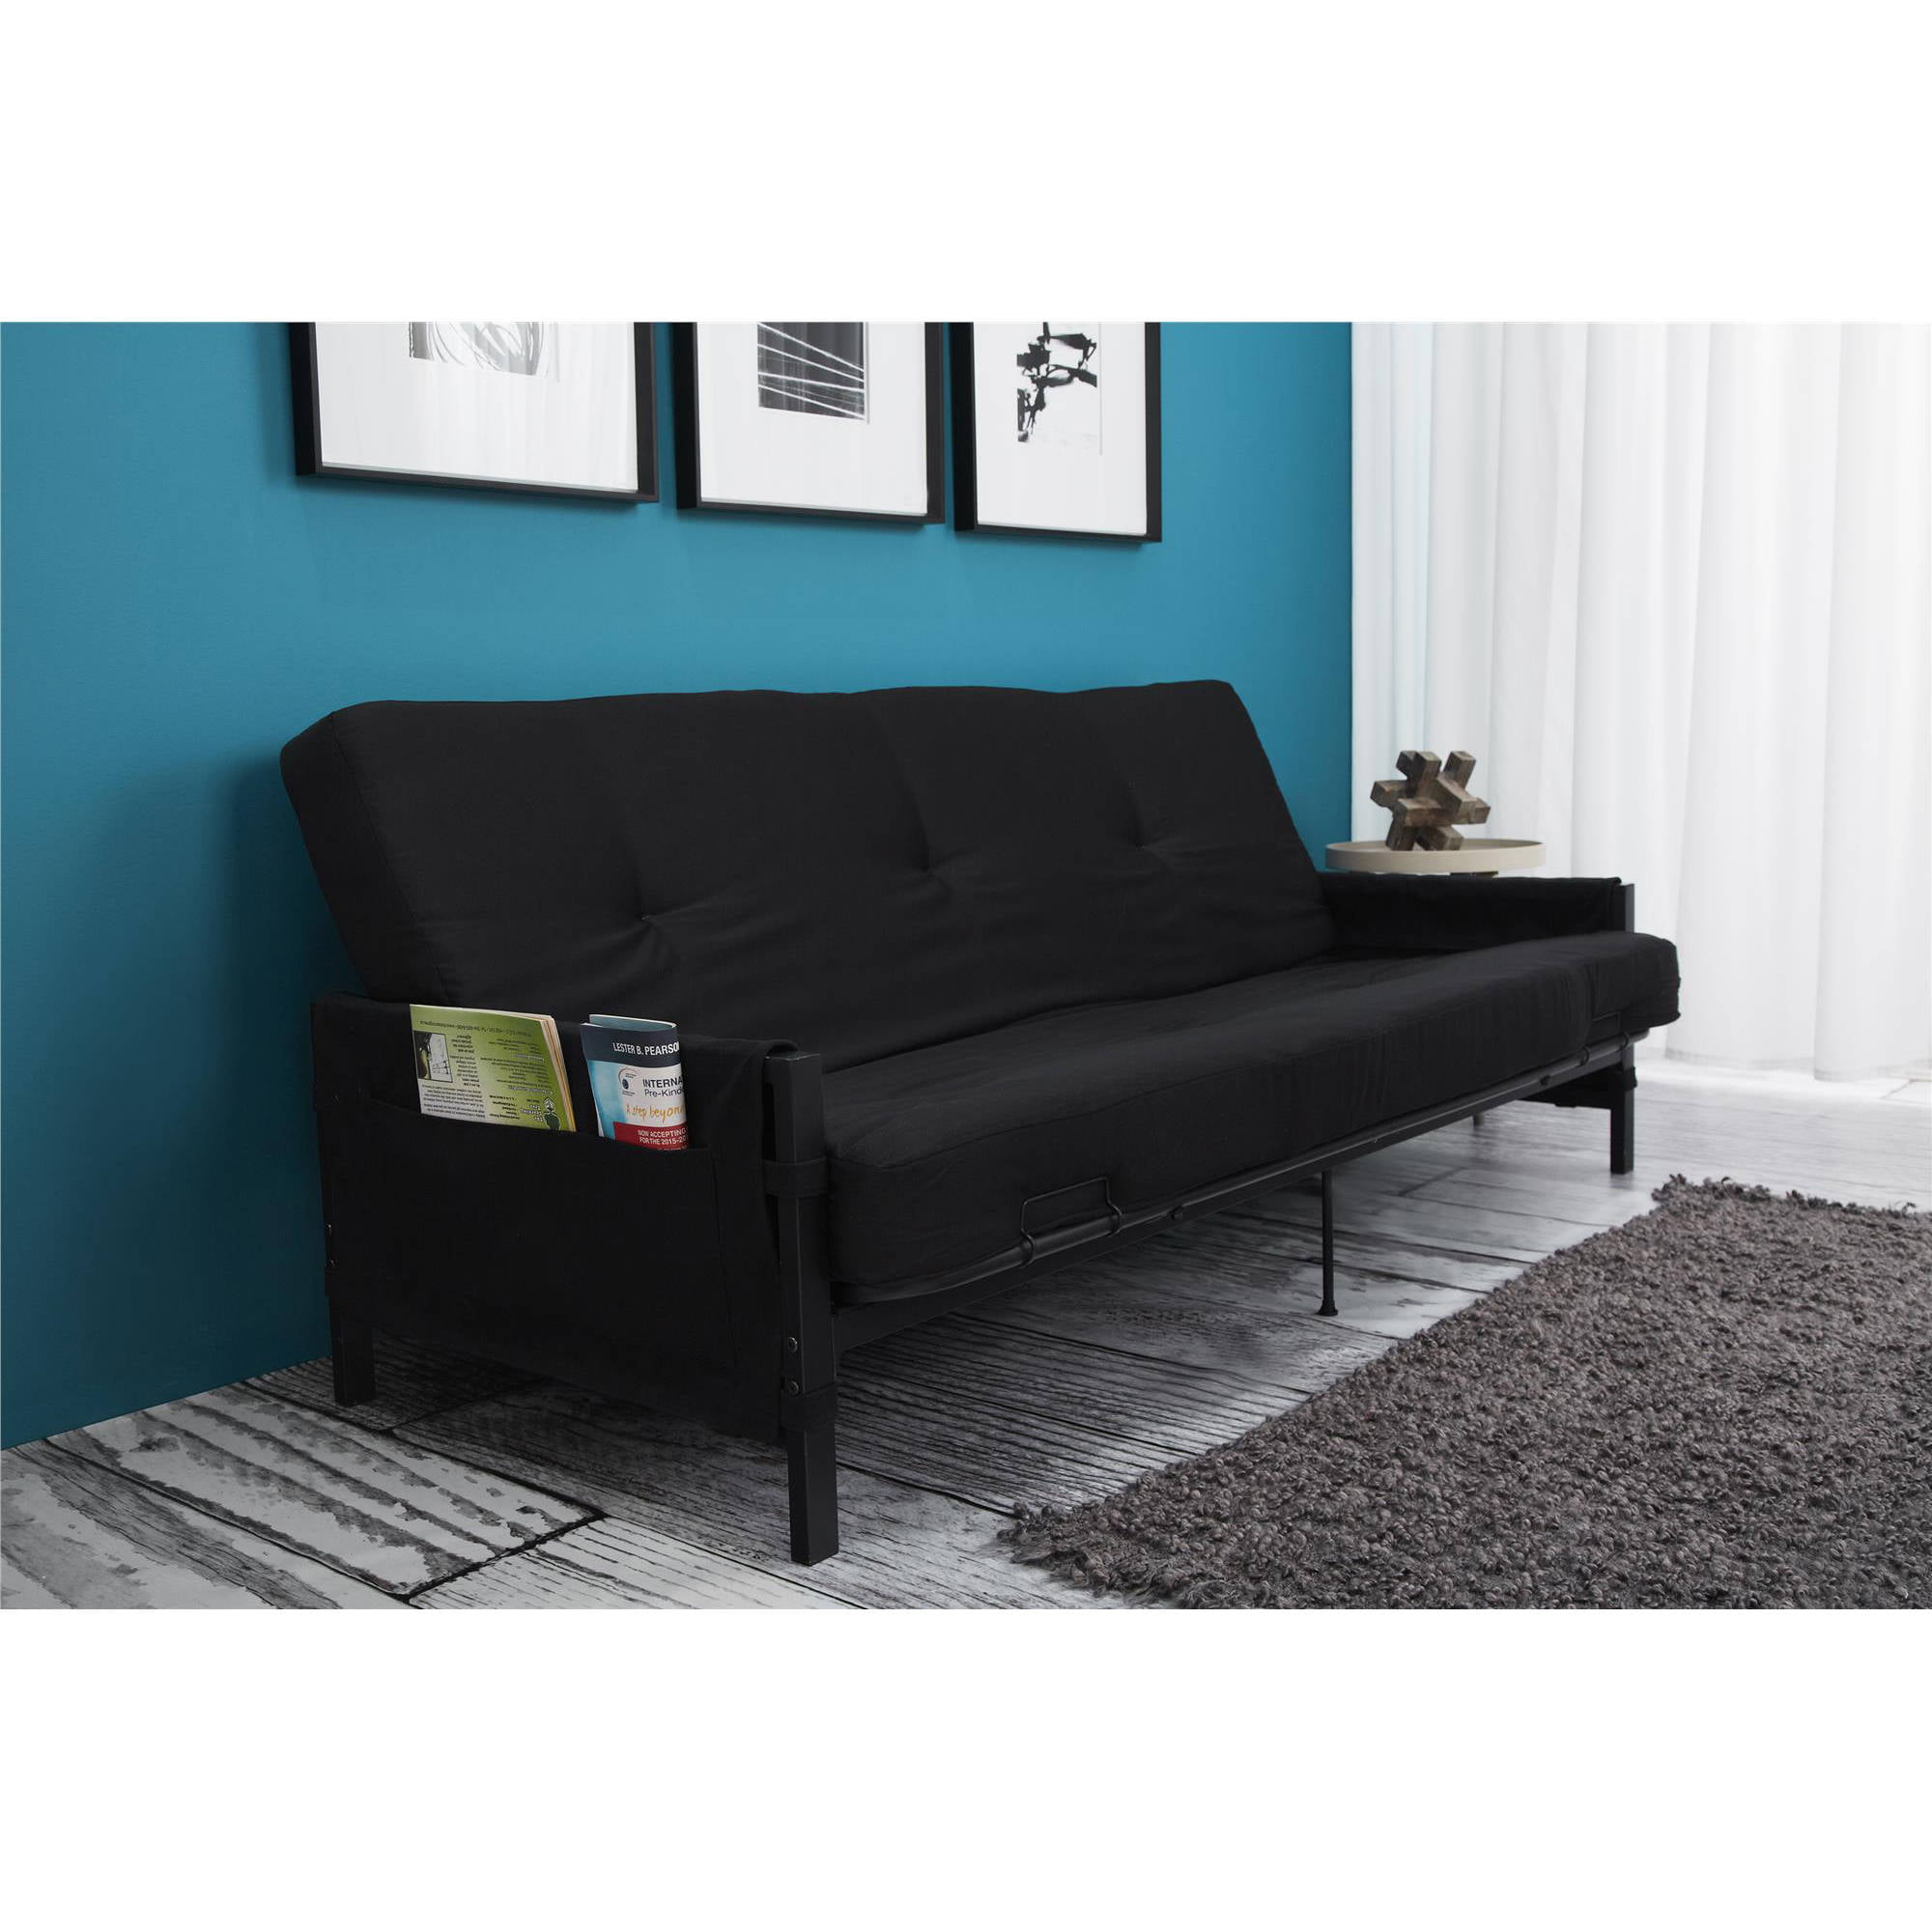 Medium image of mainstays fairview storage arm futon with 6   mattress black   walmart